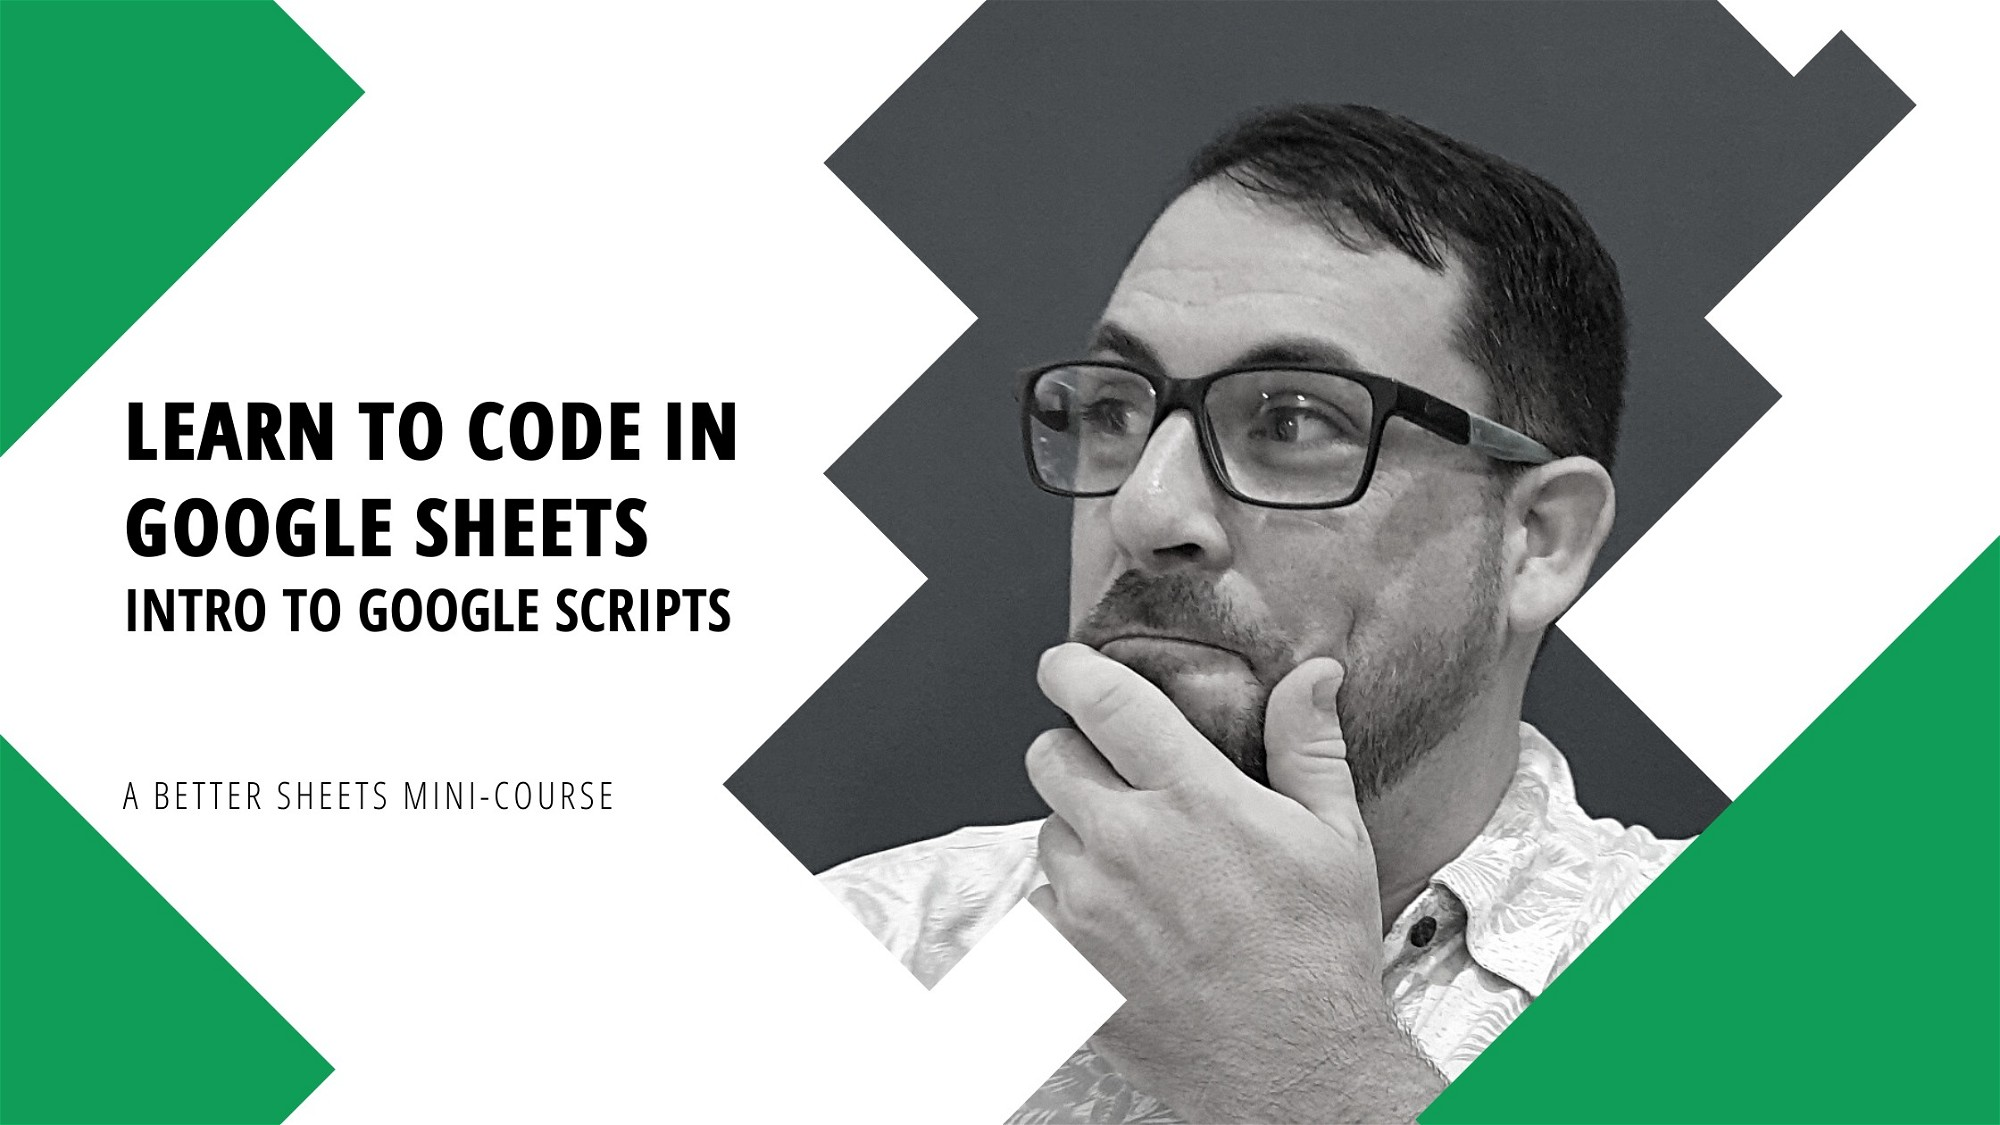 AppSumo Deal for Learn To Code In Google Sheets: An Introduction to Google Scripts